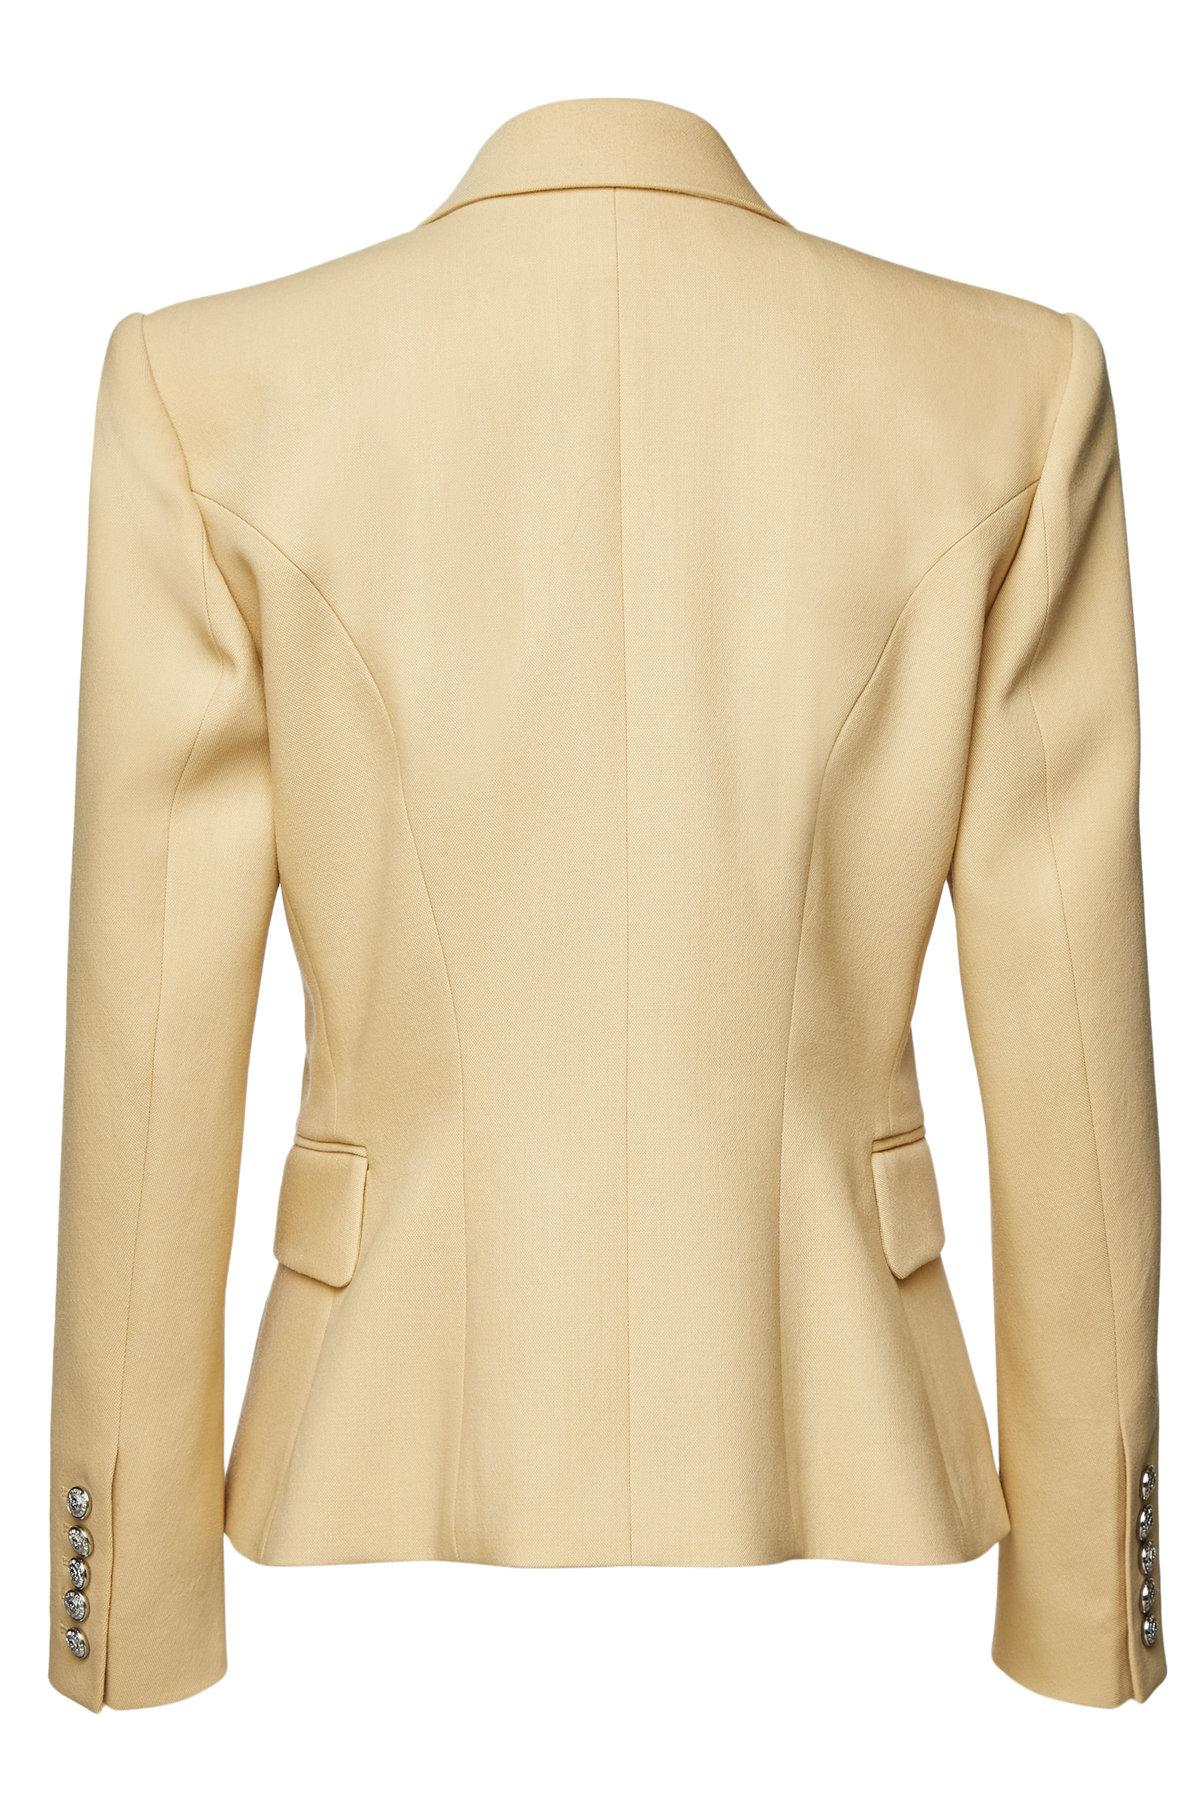 6ed8688f8 Lyst - Balmain Wool Blazer With Embossed Buttons in Natural